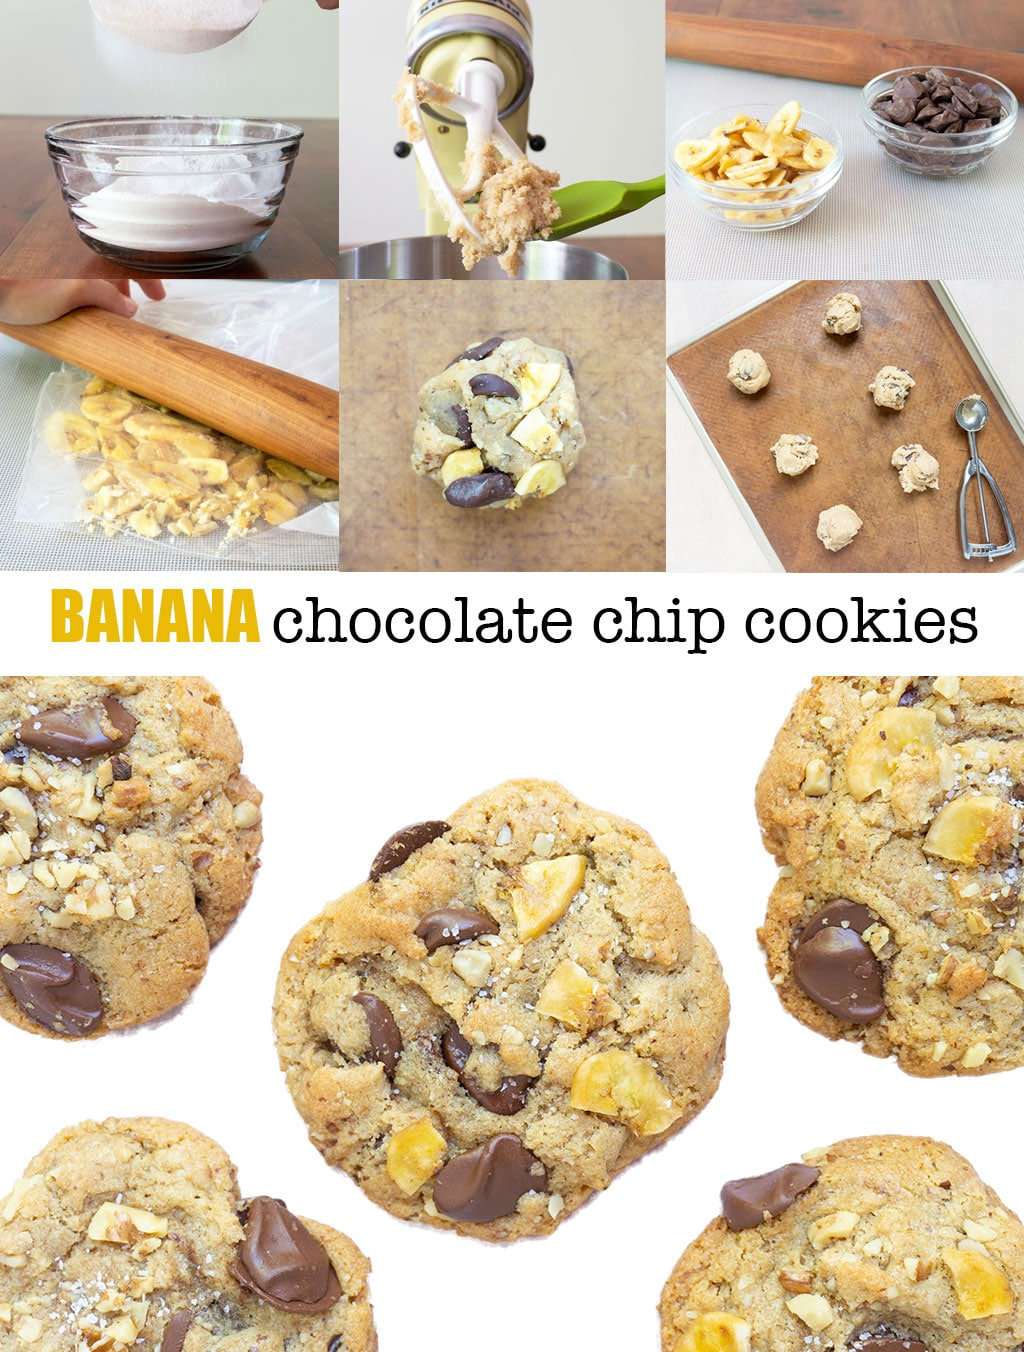 Step by Step Photos and Instructions for making Banana Chocolate Chip Cookies